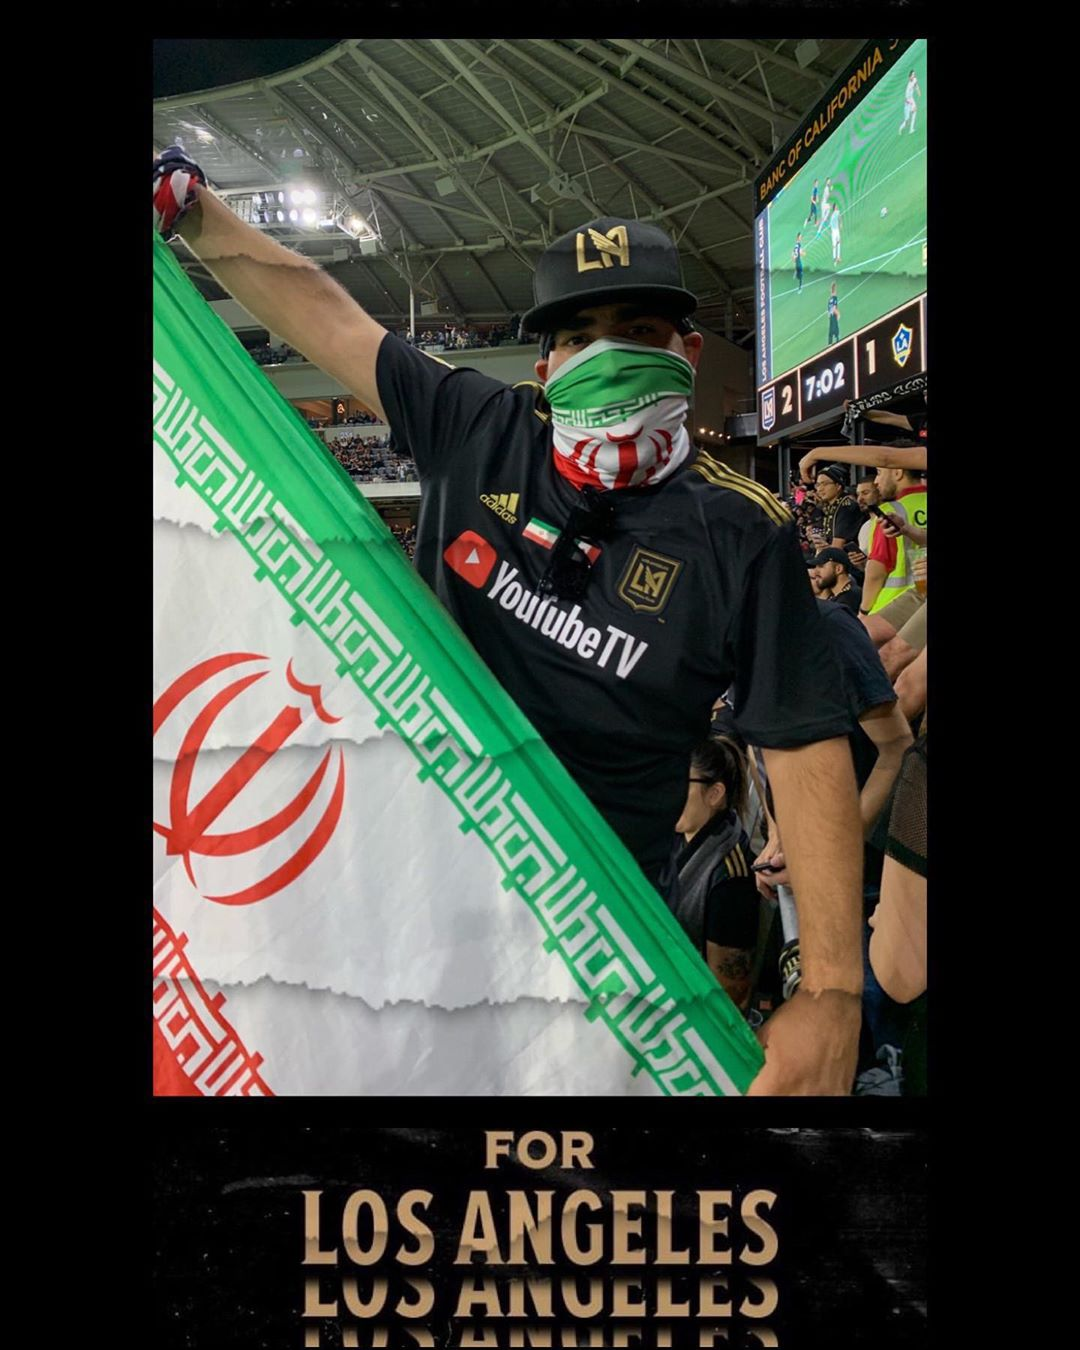 History ! Los Angeles! LA, You Keep giving me reasons to Love You @lafc 🇮🇷 🇲🇽 @lafc3252 @lafckrew